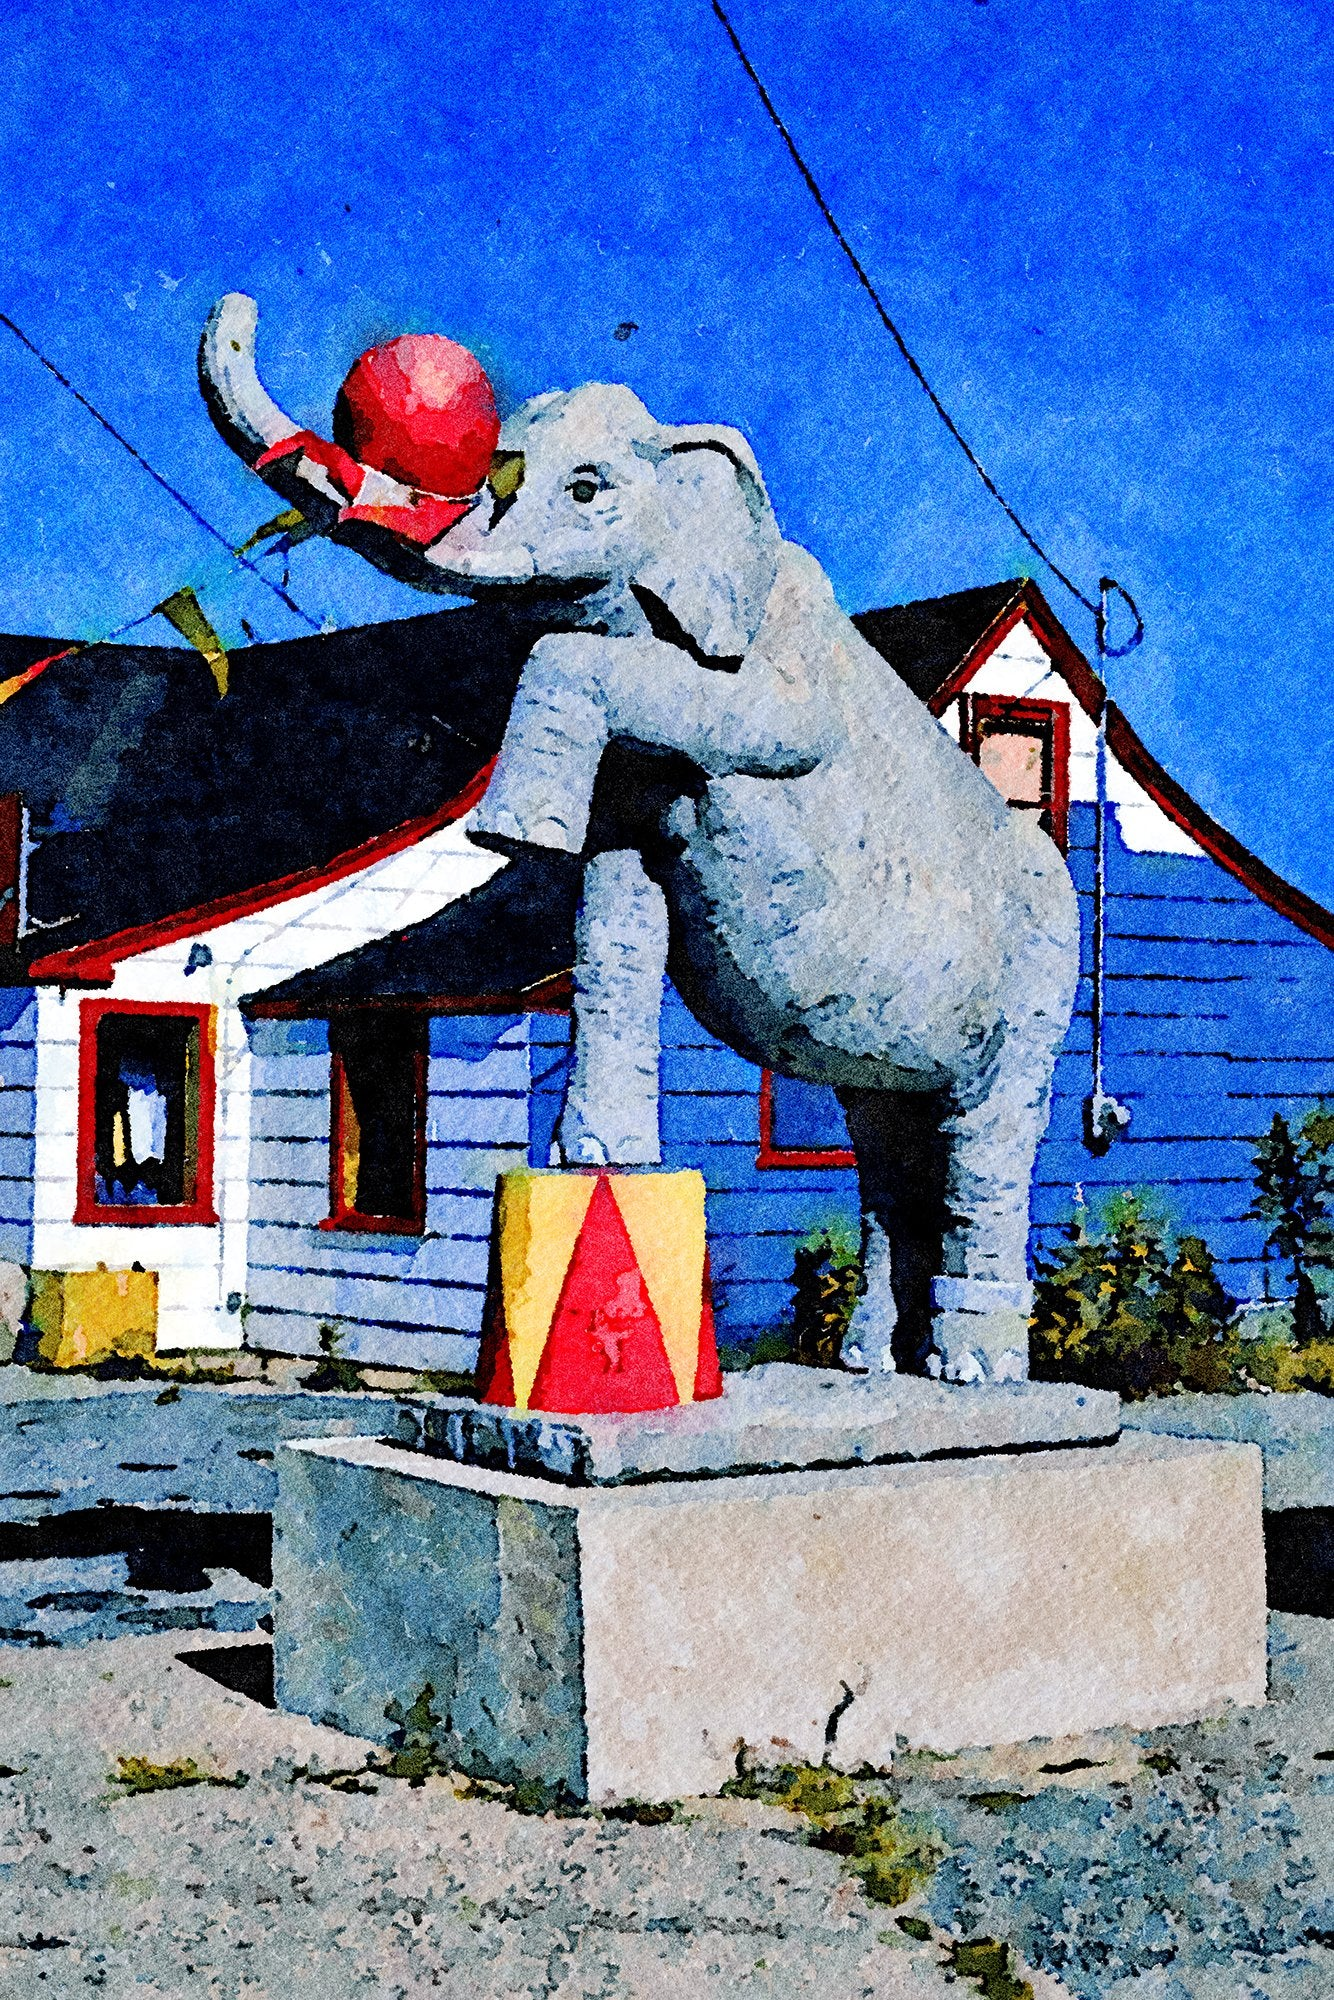 India Boutique Elephant Statue, Route 28, Dennisport, Massachusetts, Reworked, Series 1